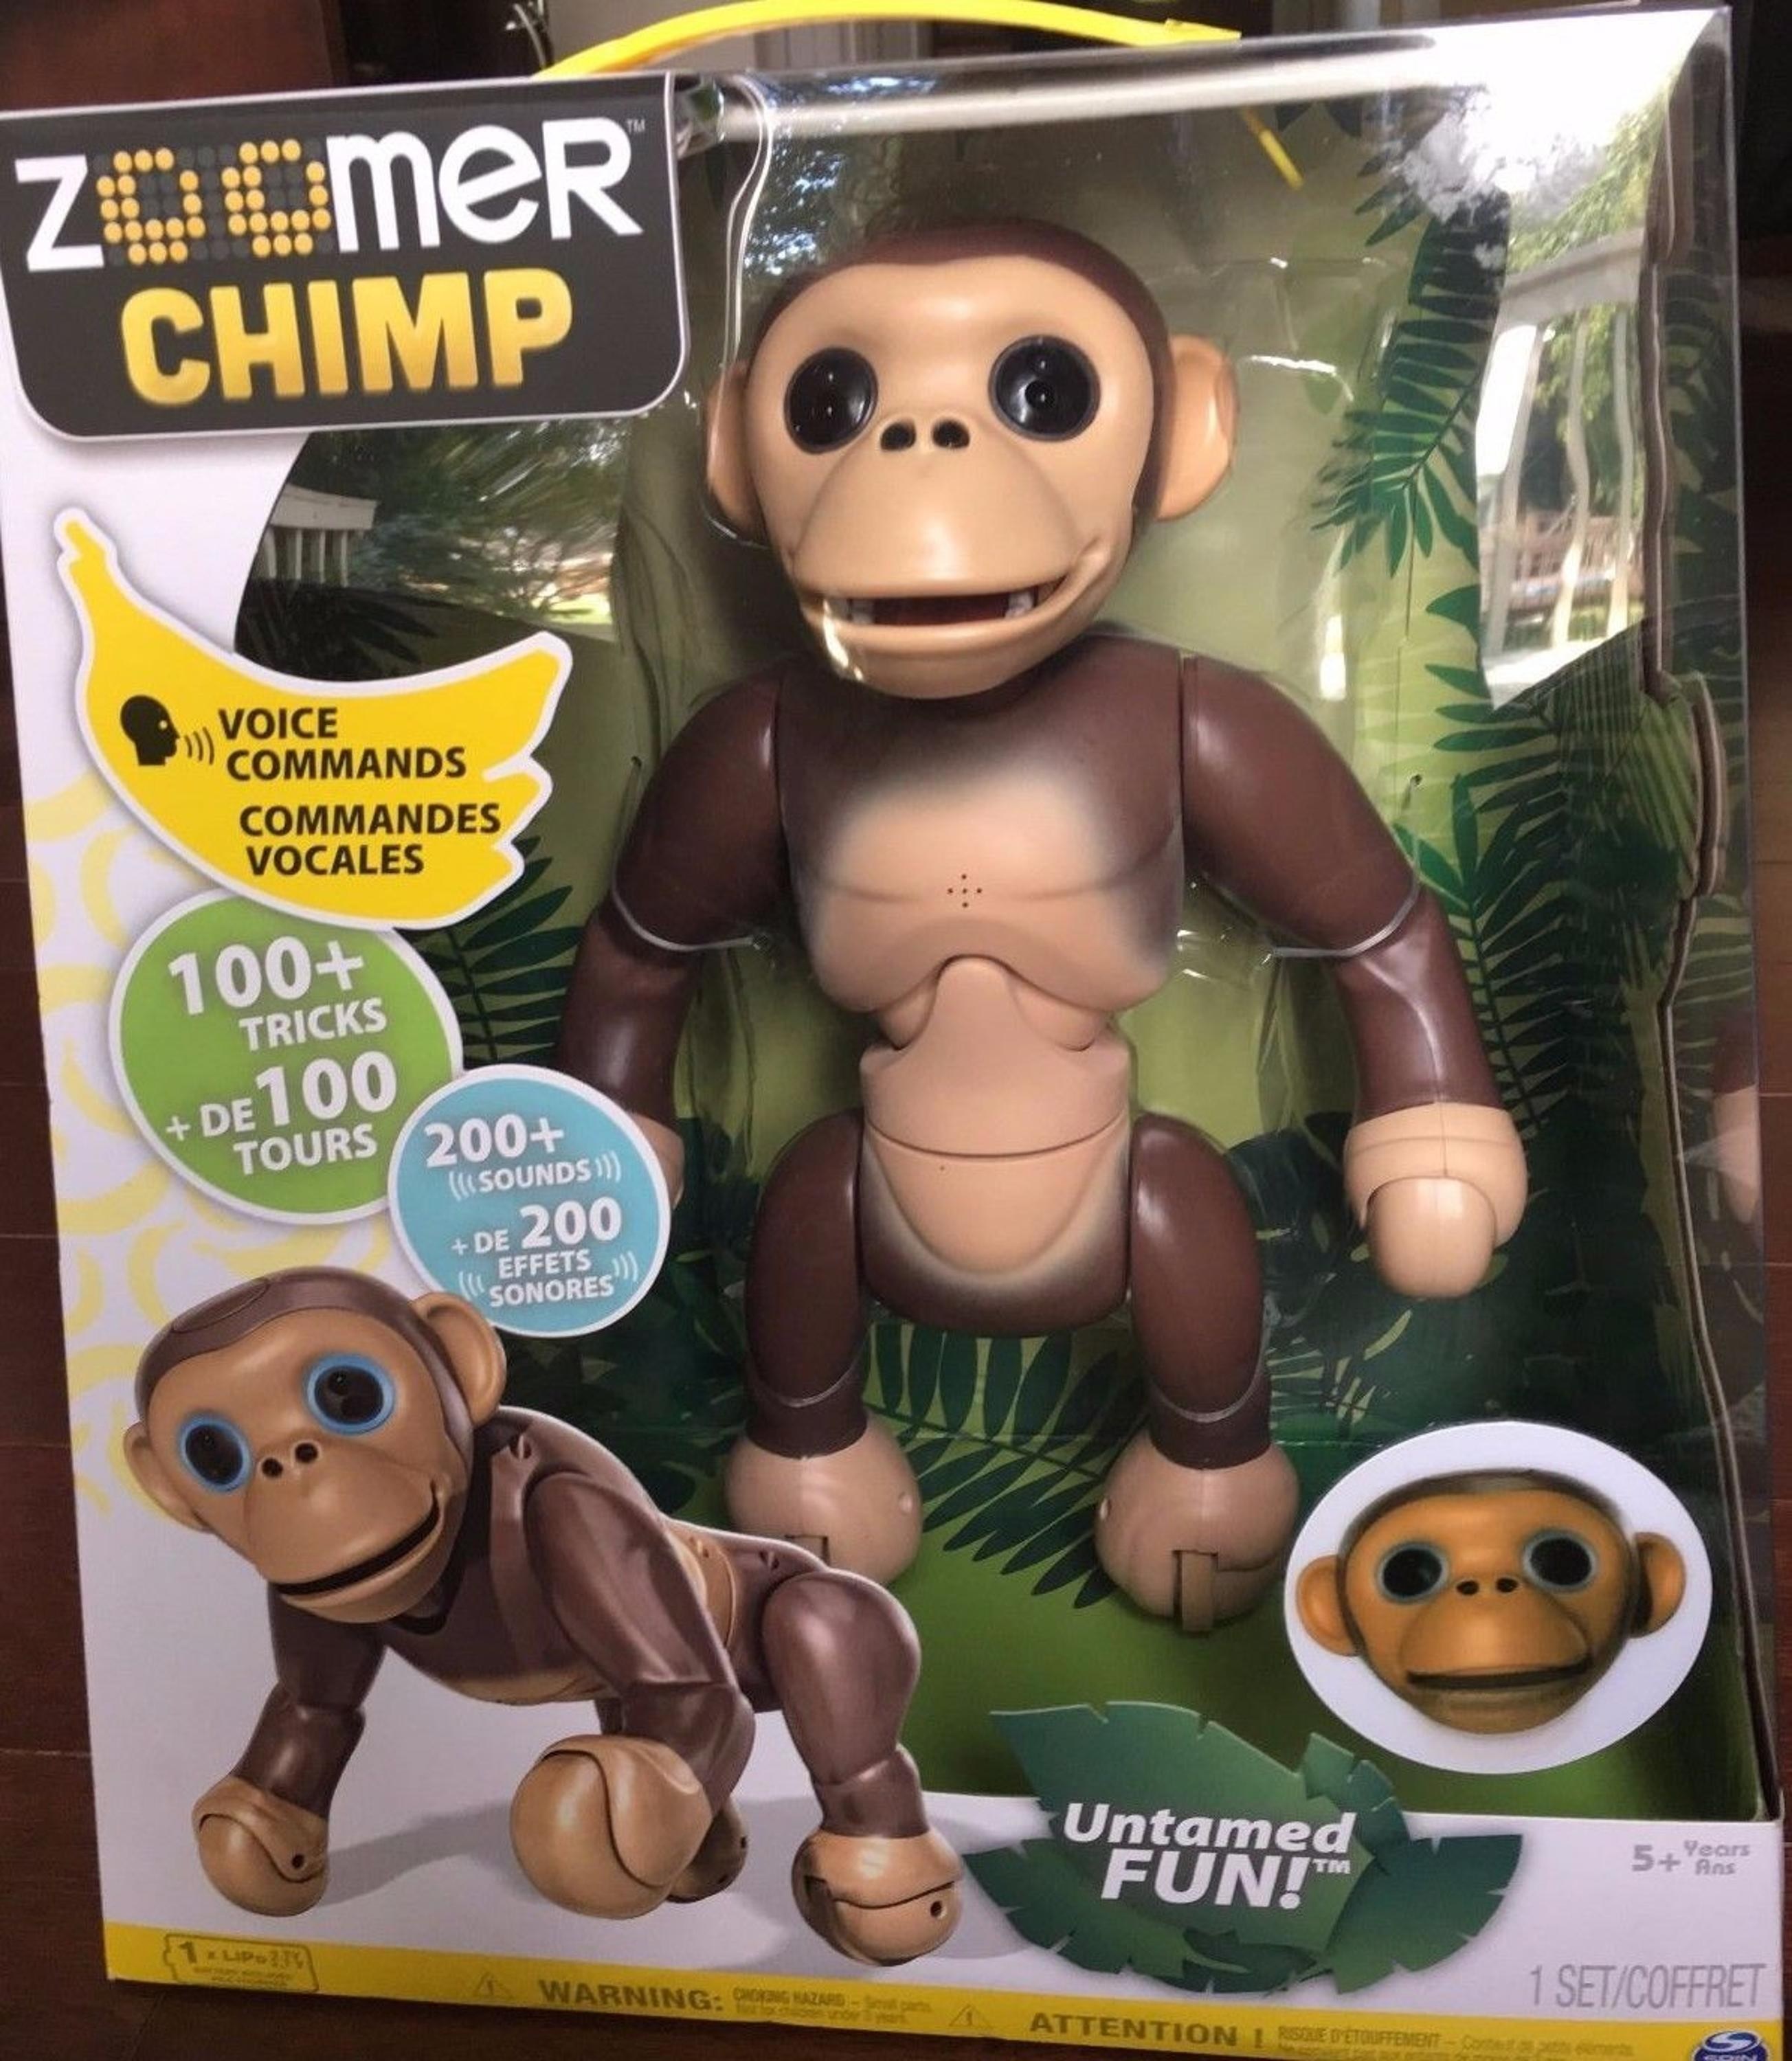 BUY SPIN MASTER ZOOMER CHIMP ELECTRONIC INTERACTIVE MONKEY PET KIDS TO